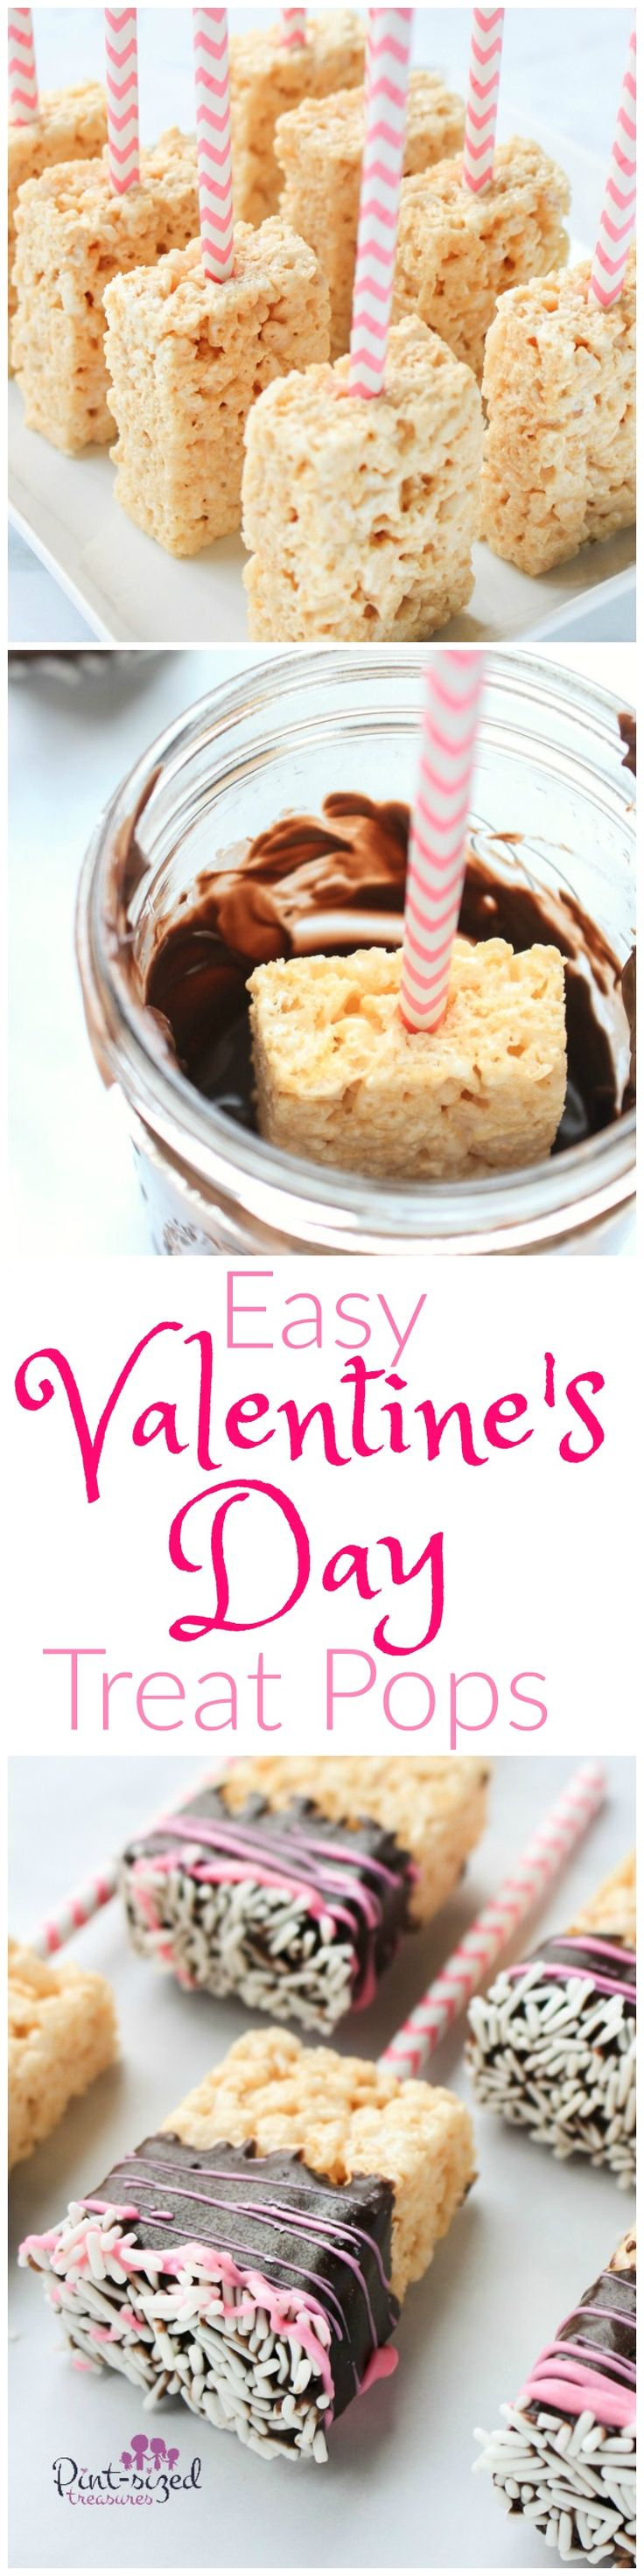 Valentine's Day treat pops are the perfect, easy treat to add to your Valentine's Day party! These ooe-y gooey treats are dipped in chocolate and then scribble dead decked with Valentine's day garnishes. Enjoy this amazing homemade recipe that makes all the kids AND adults smile on Valentine's Day!